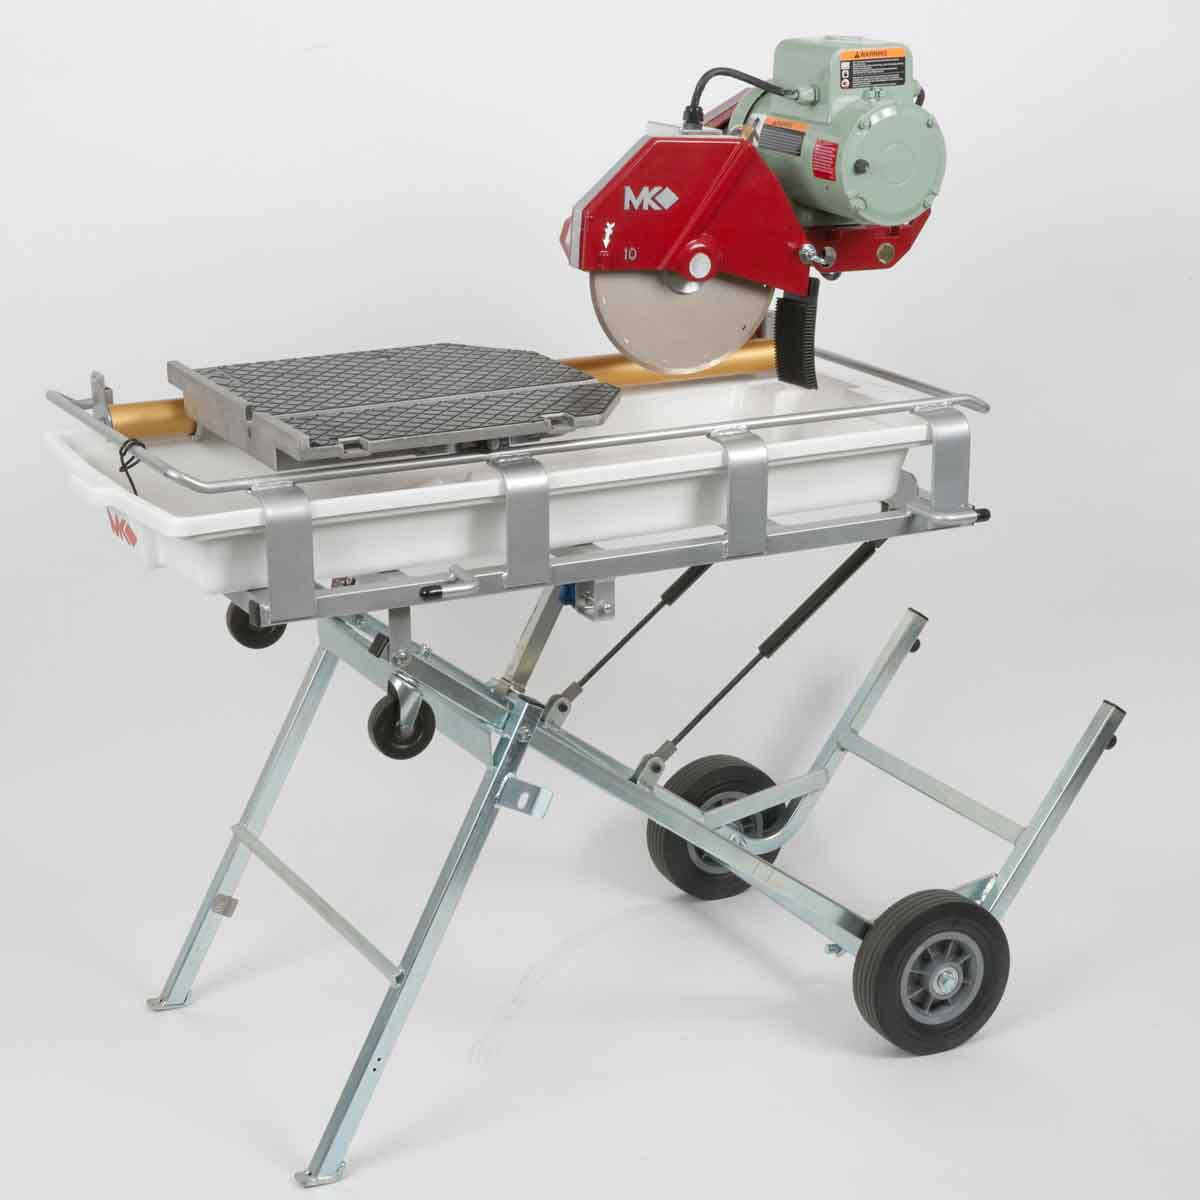 Mounted MK Tile Saw With Wheels